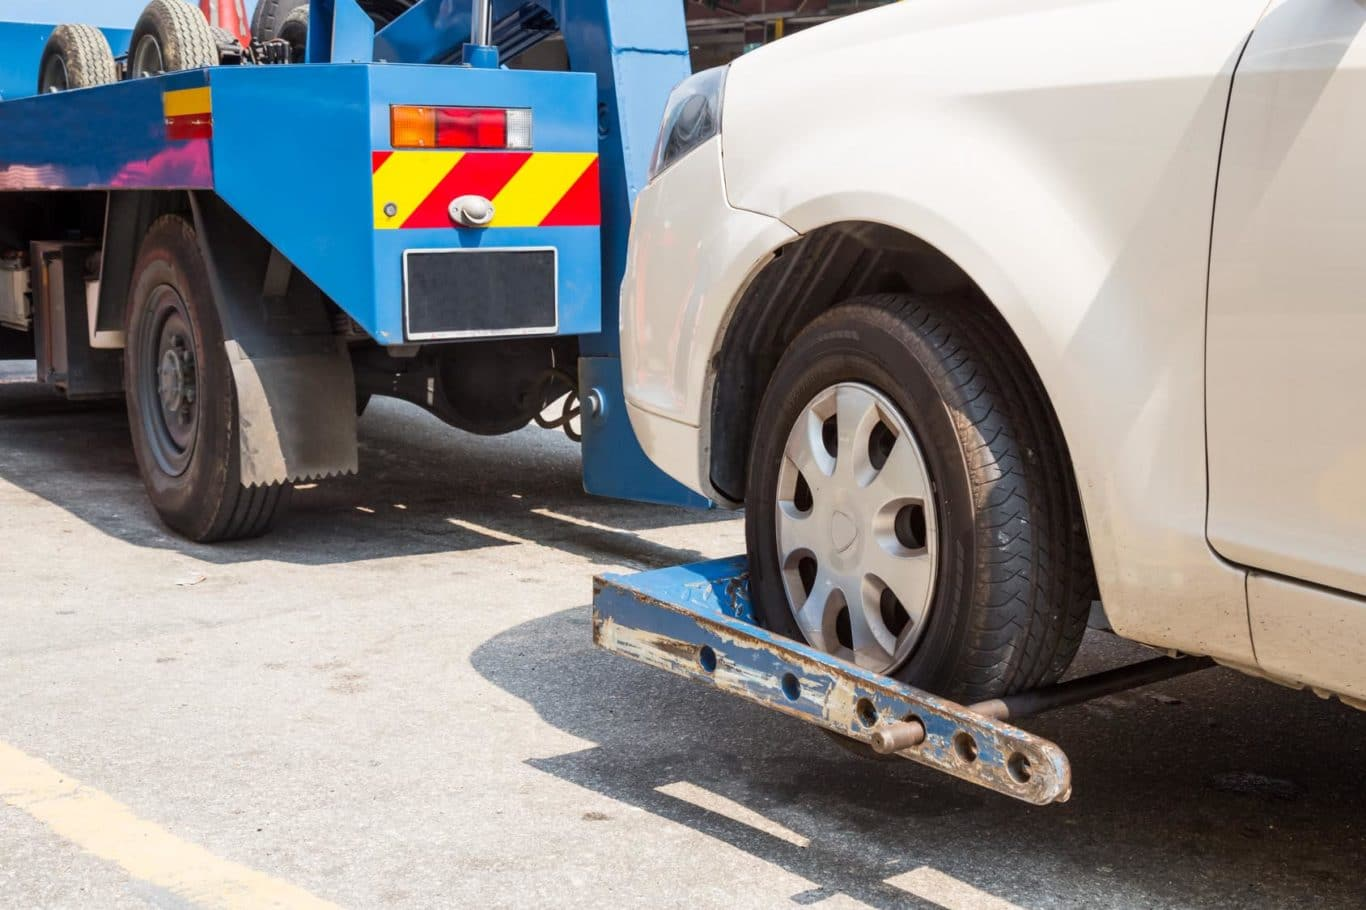 Kilbride, County Wicklow expert Car Towing services